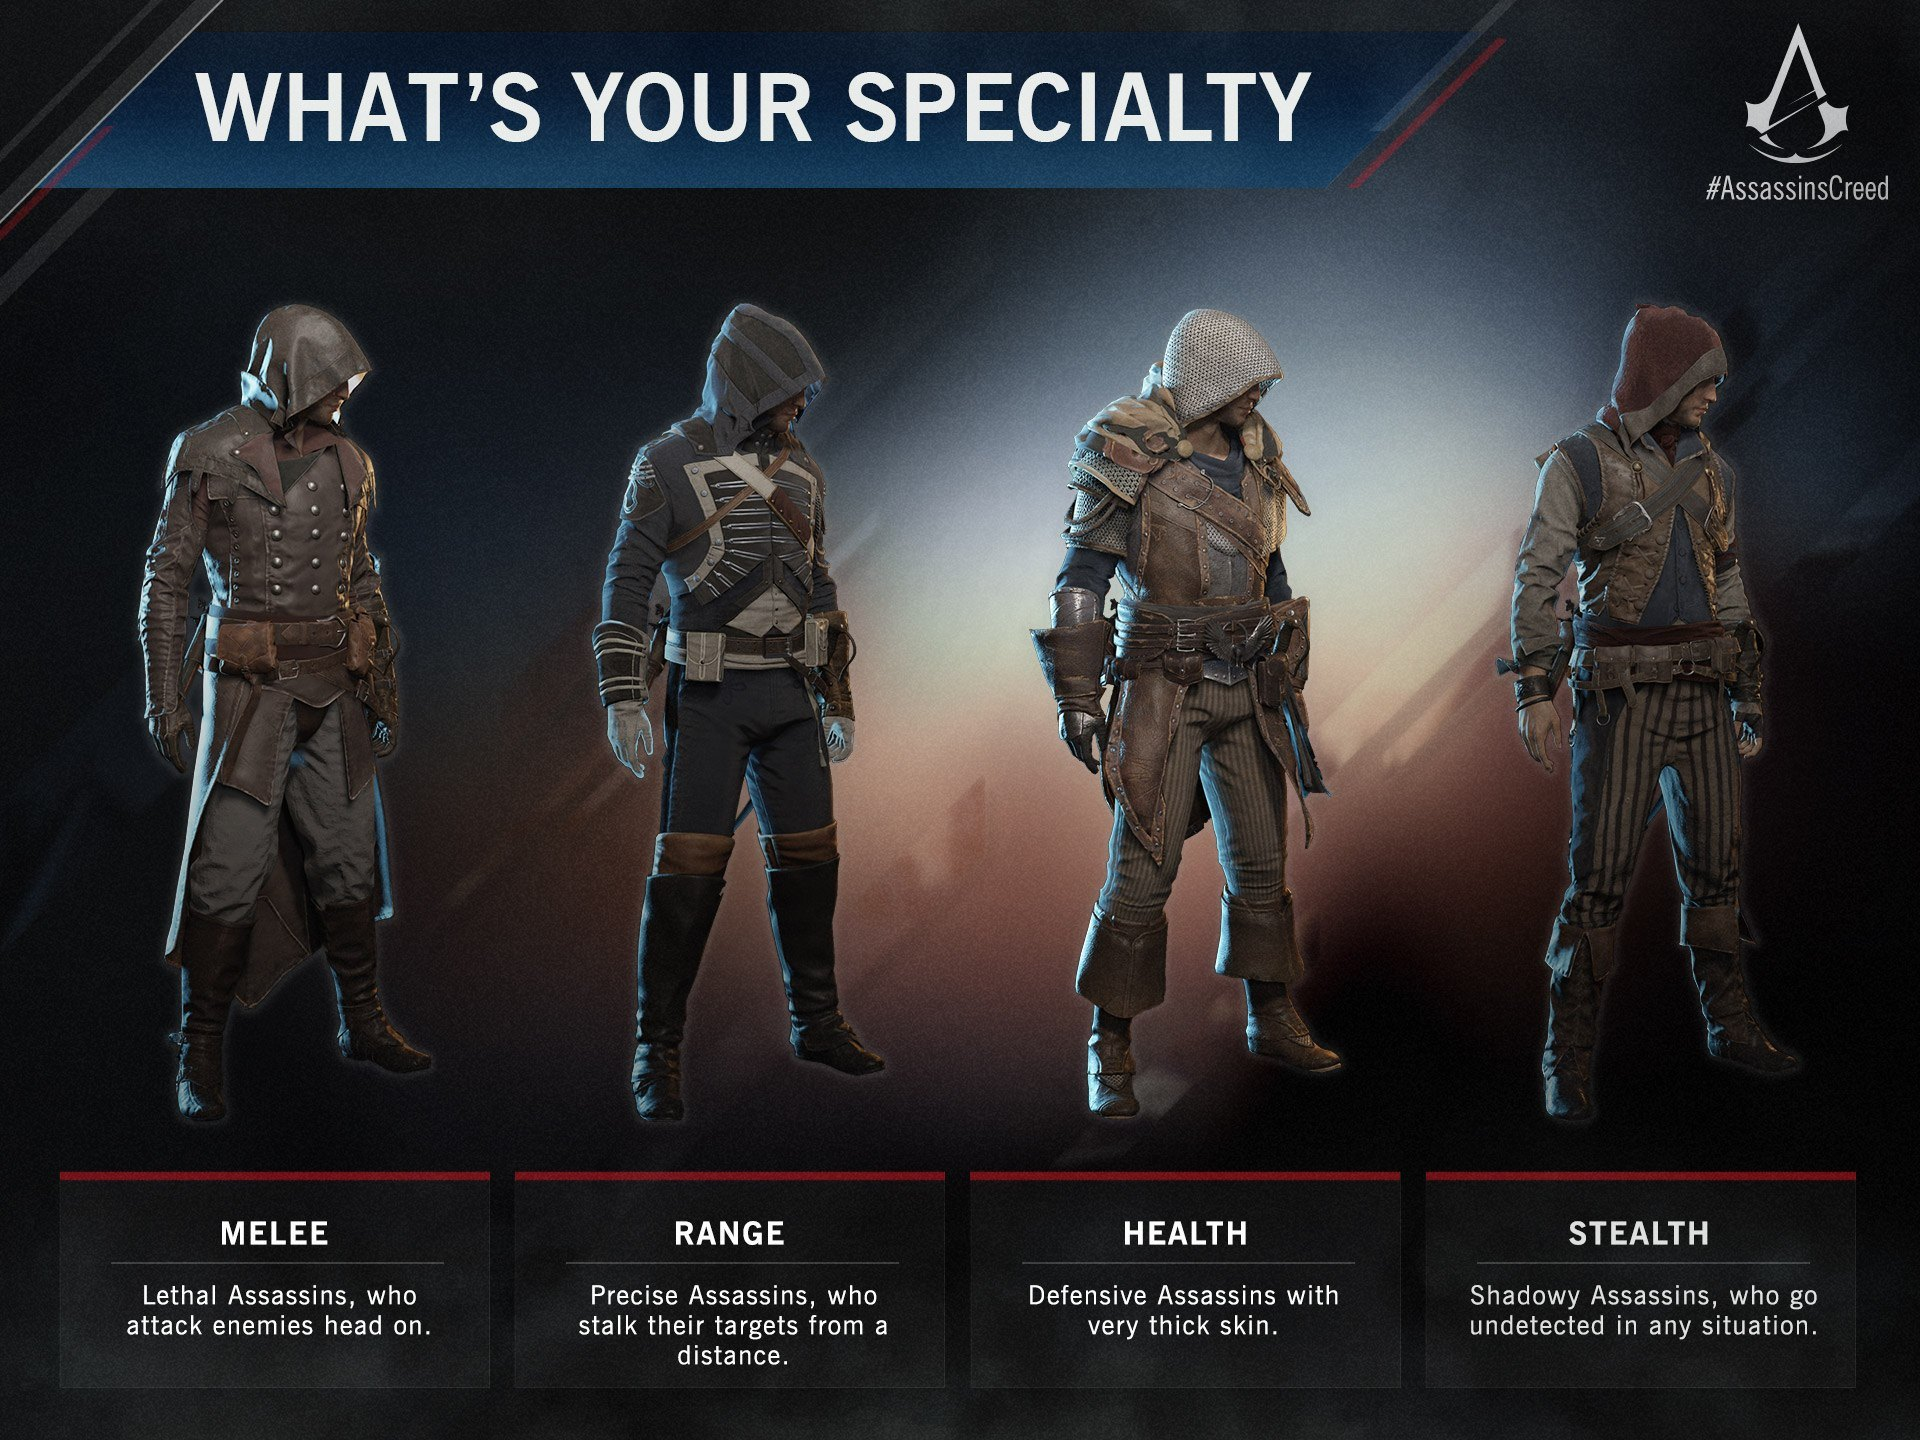 Assassin's creed unity multiplayer matchmaking